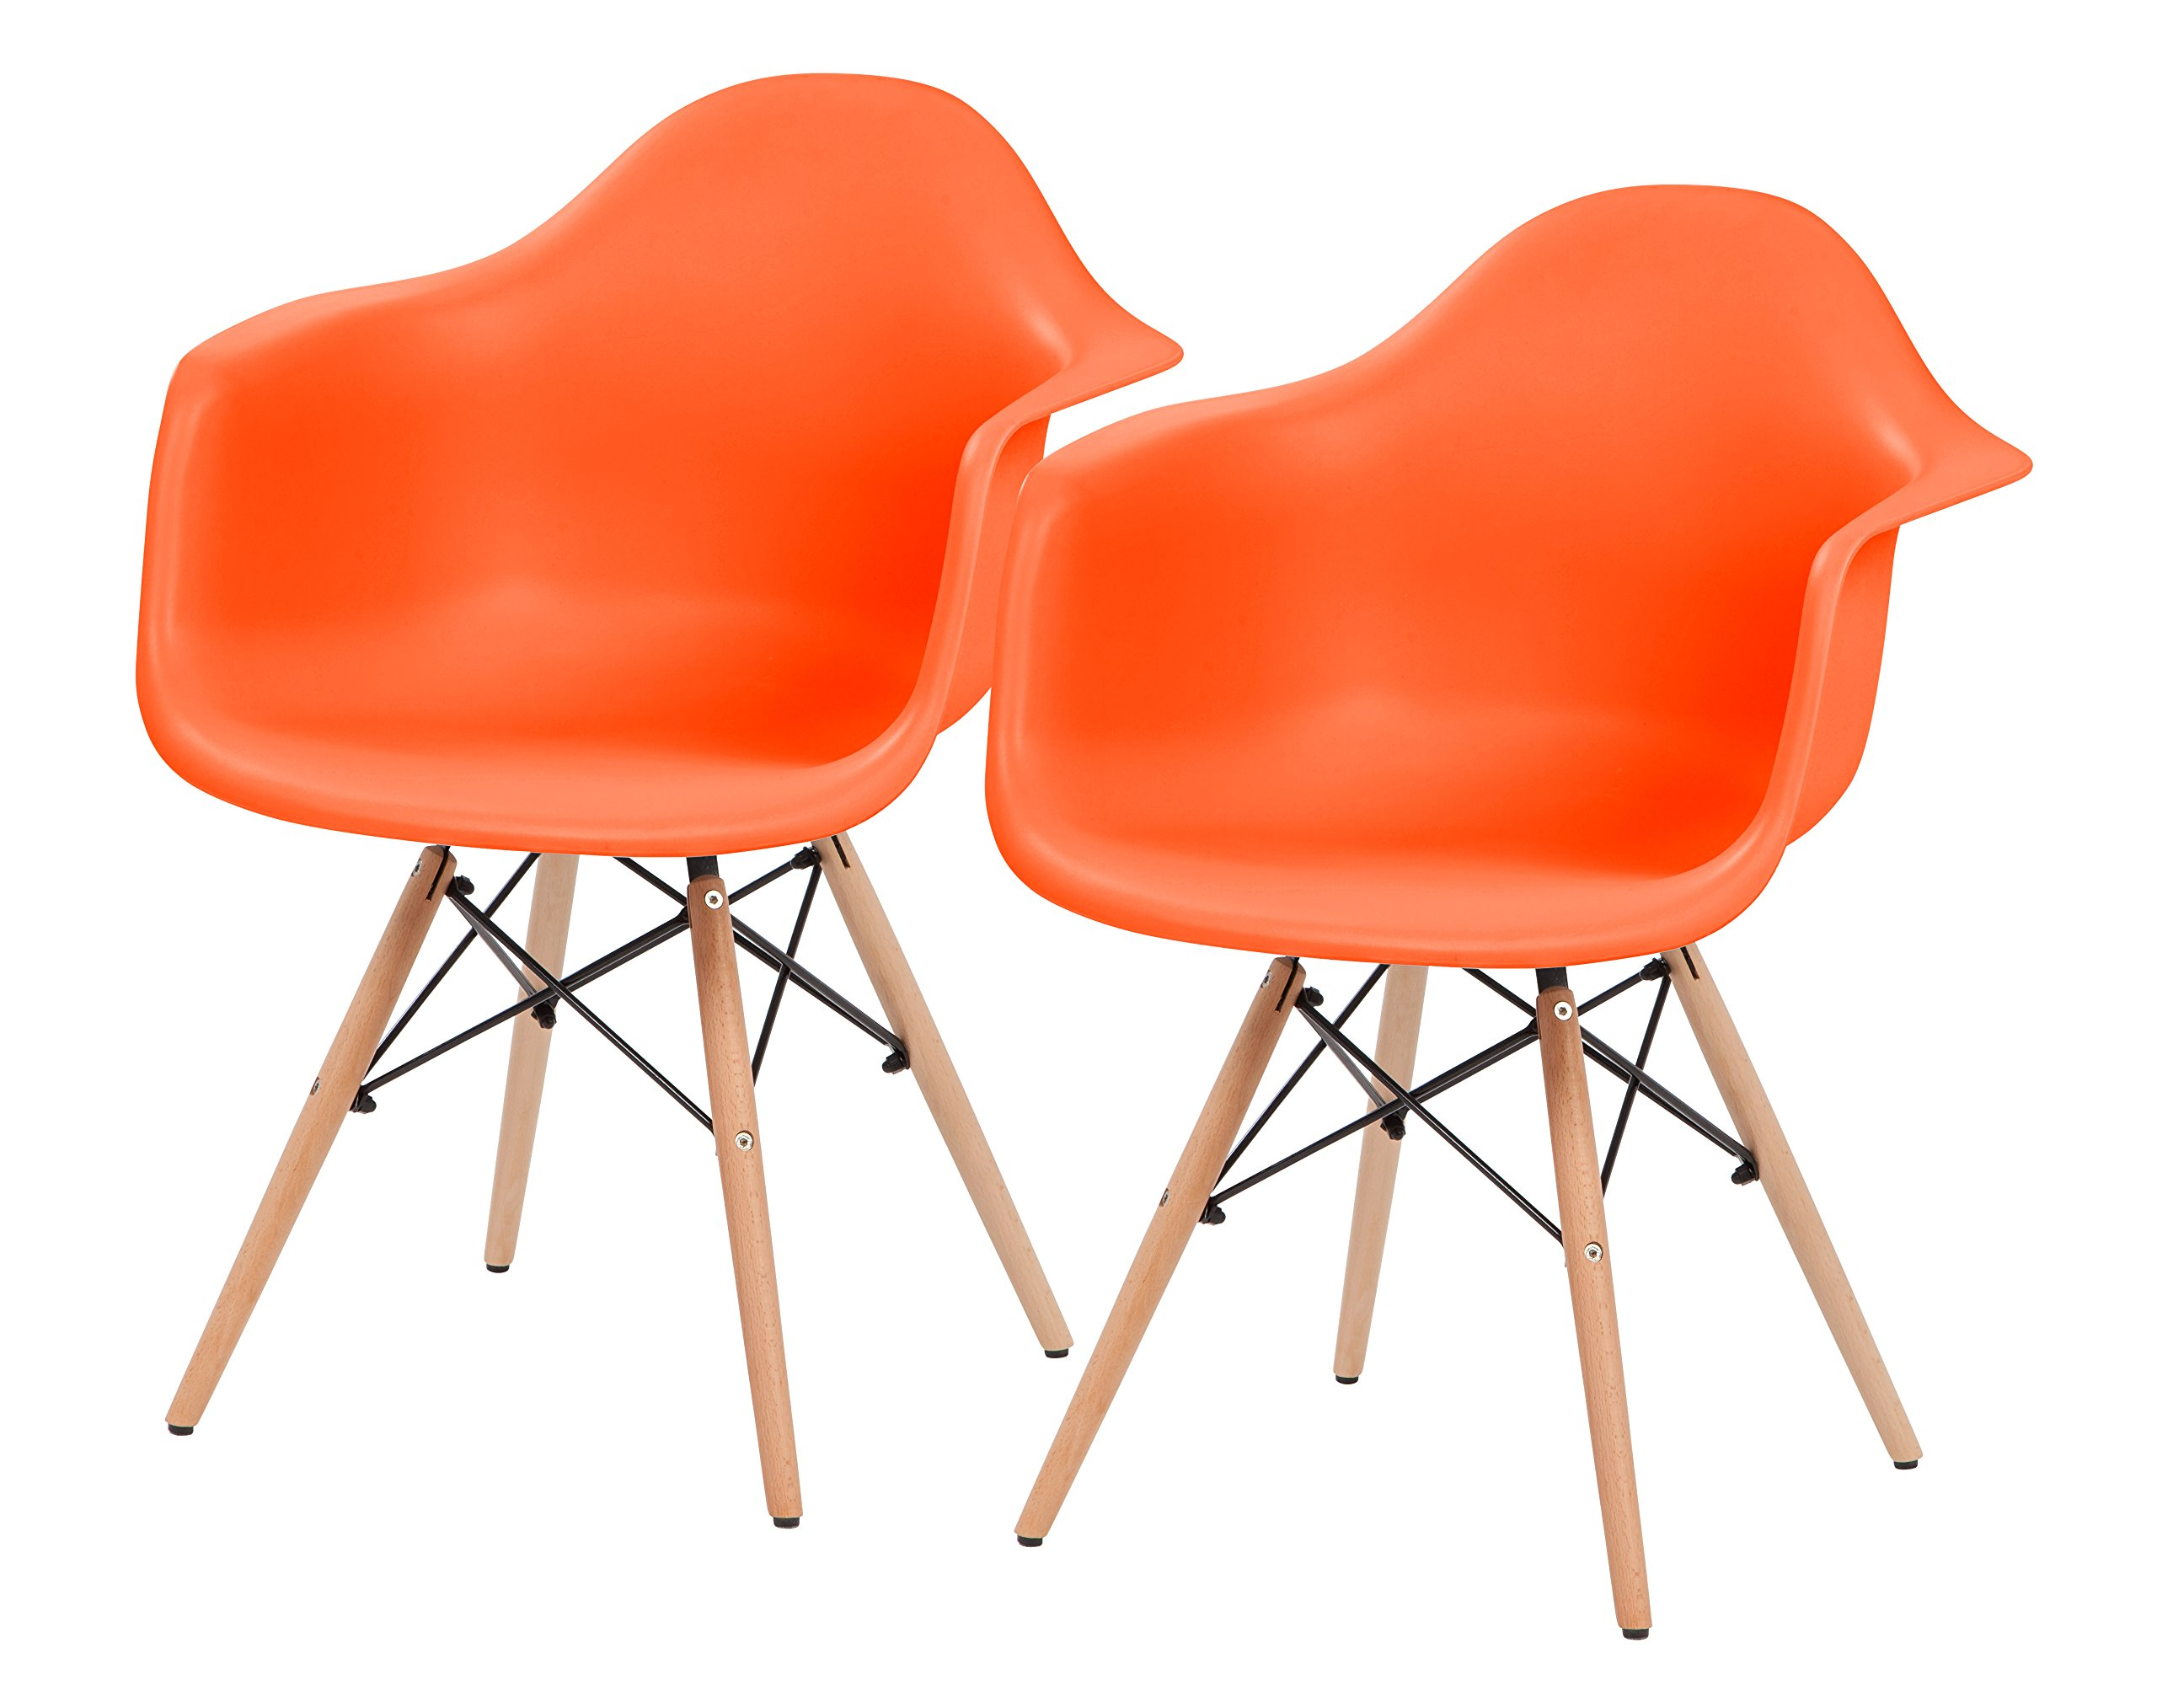 IRIS Mid-Century Modern Shell Armchair with Wood Eiffel Legs, 2 Pack, Tangerine Orange